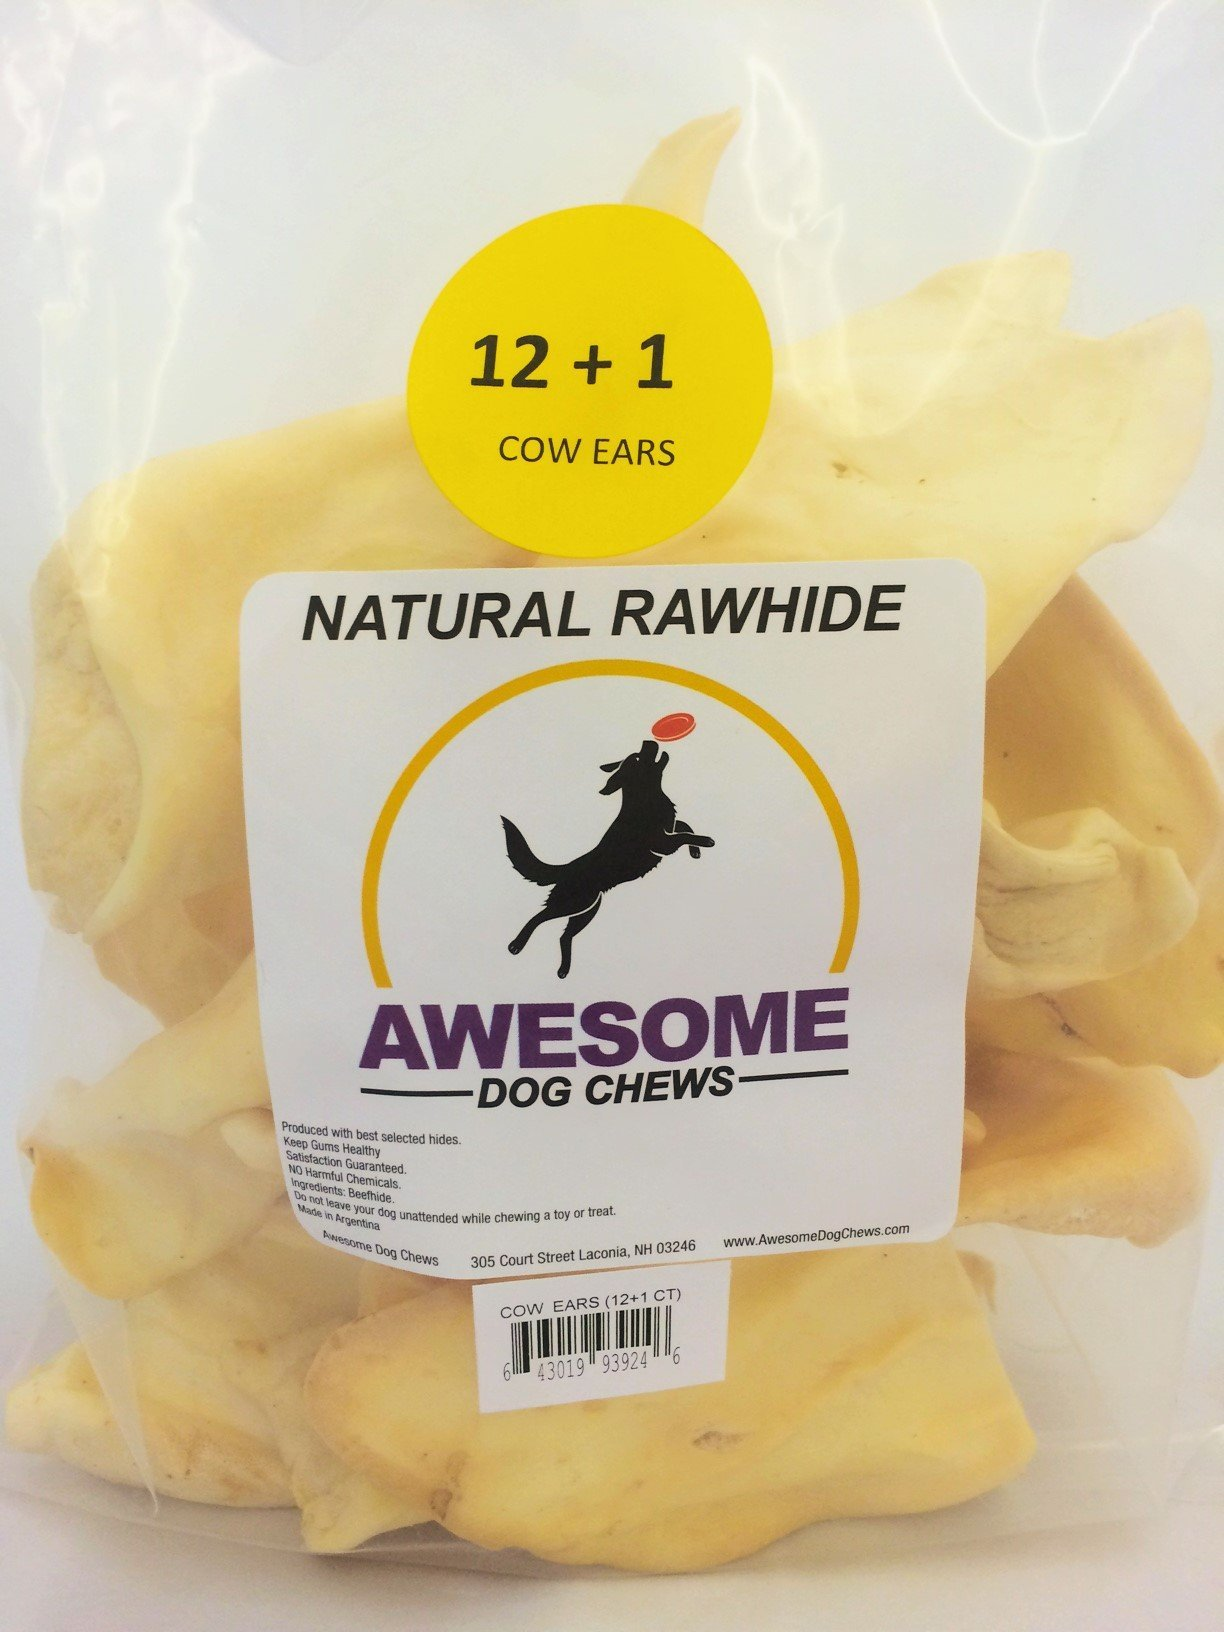 100% Awesome Dog Chews All Natural Cow Ears 12 + 1 FREE Count - FDA / USDA Inspected Through a Registered FDA Plant